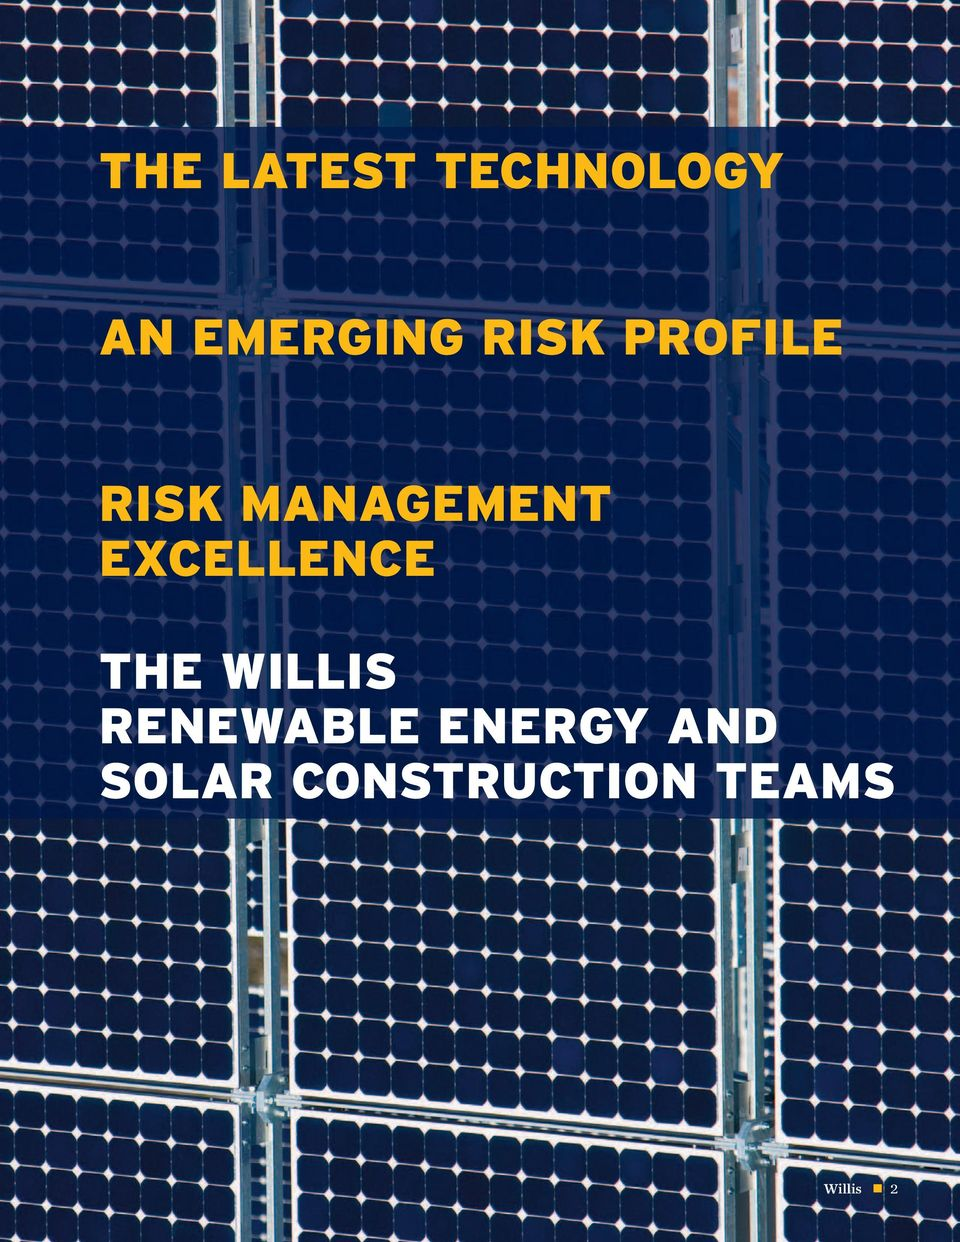 EXCELLENCE THE WILLIS RENEWABLE